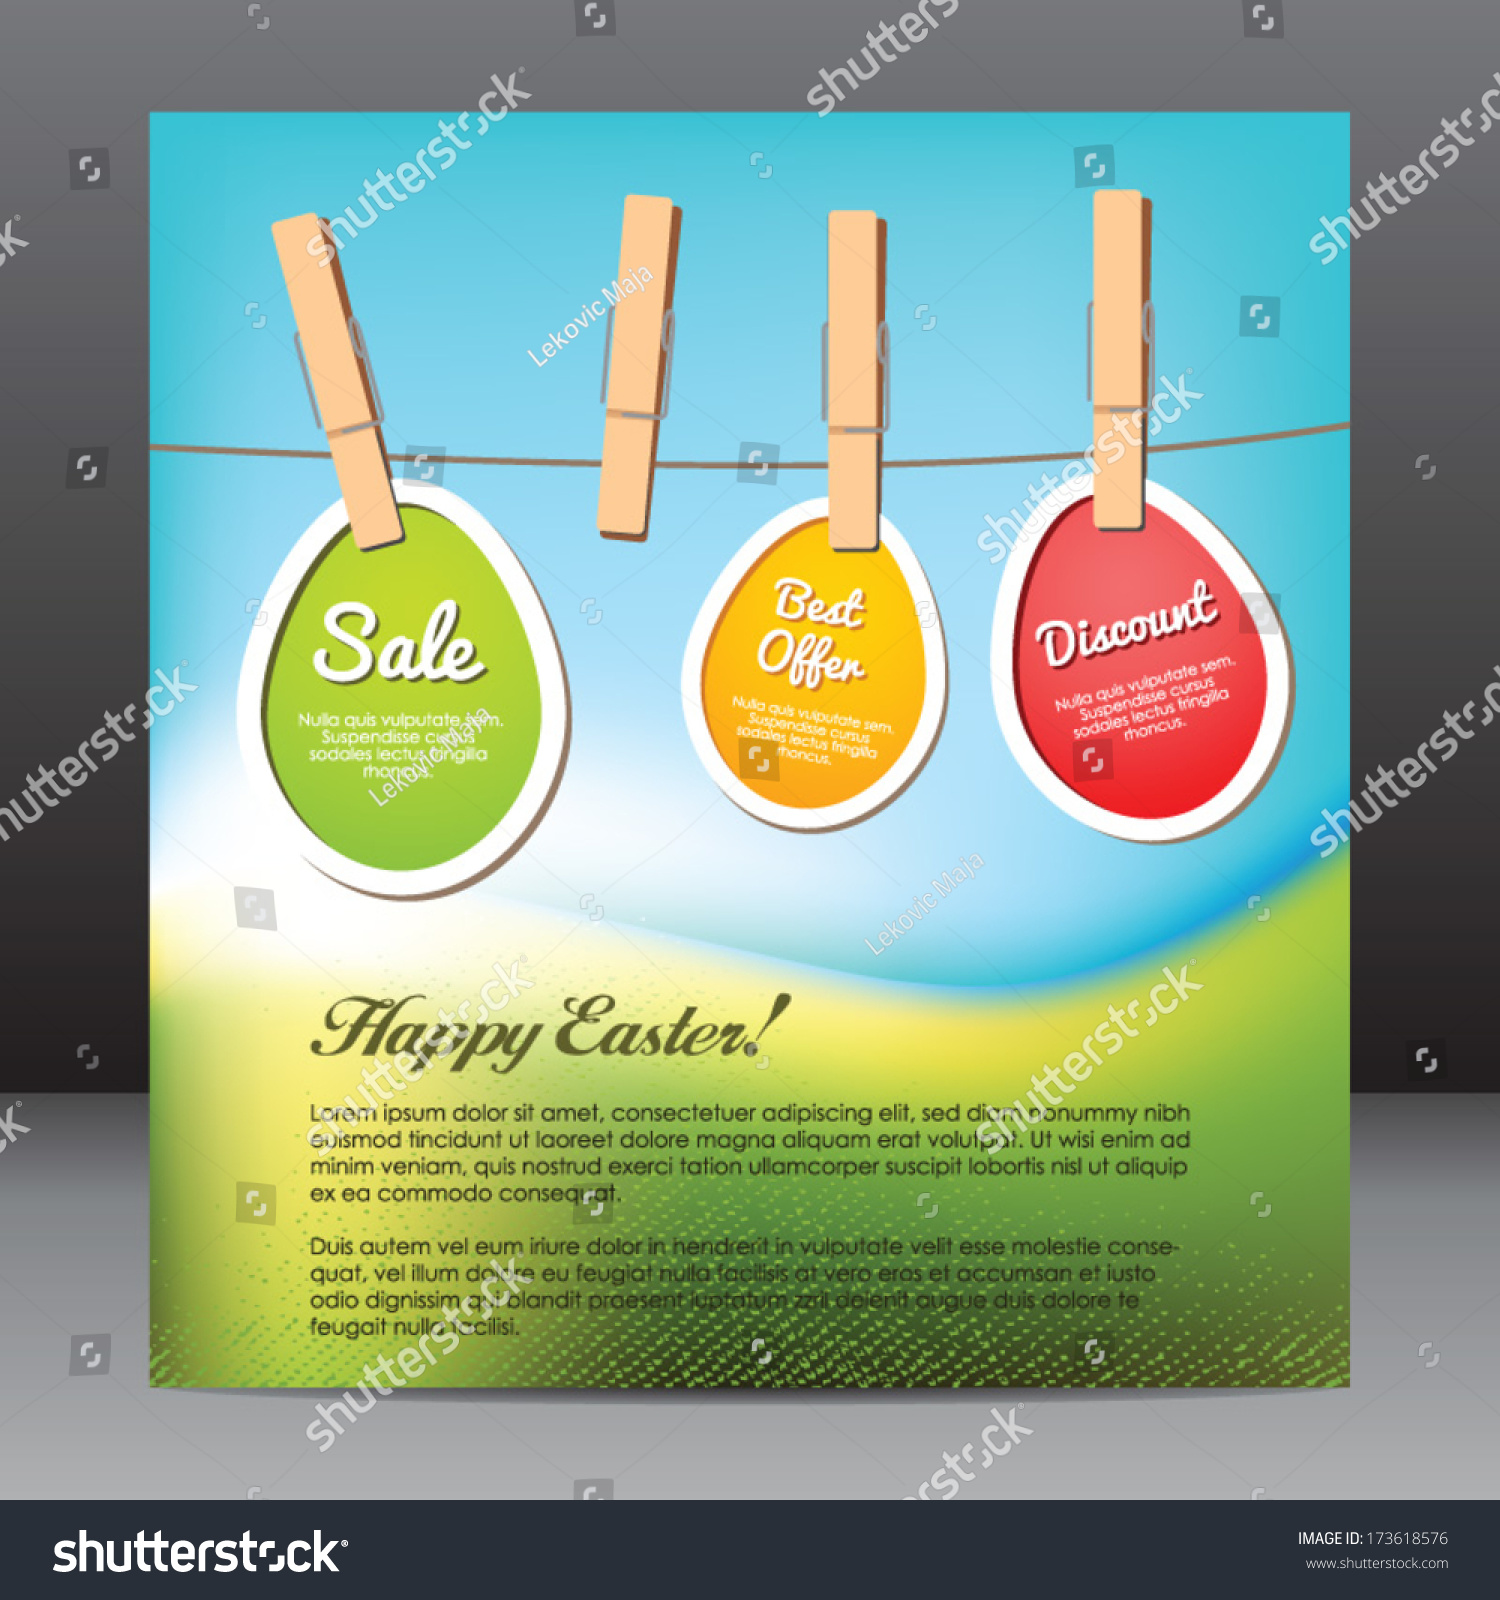 happy easter flyer design template eggs stock vector  happy easter flyer design template eggs stickers on clothespin discount text